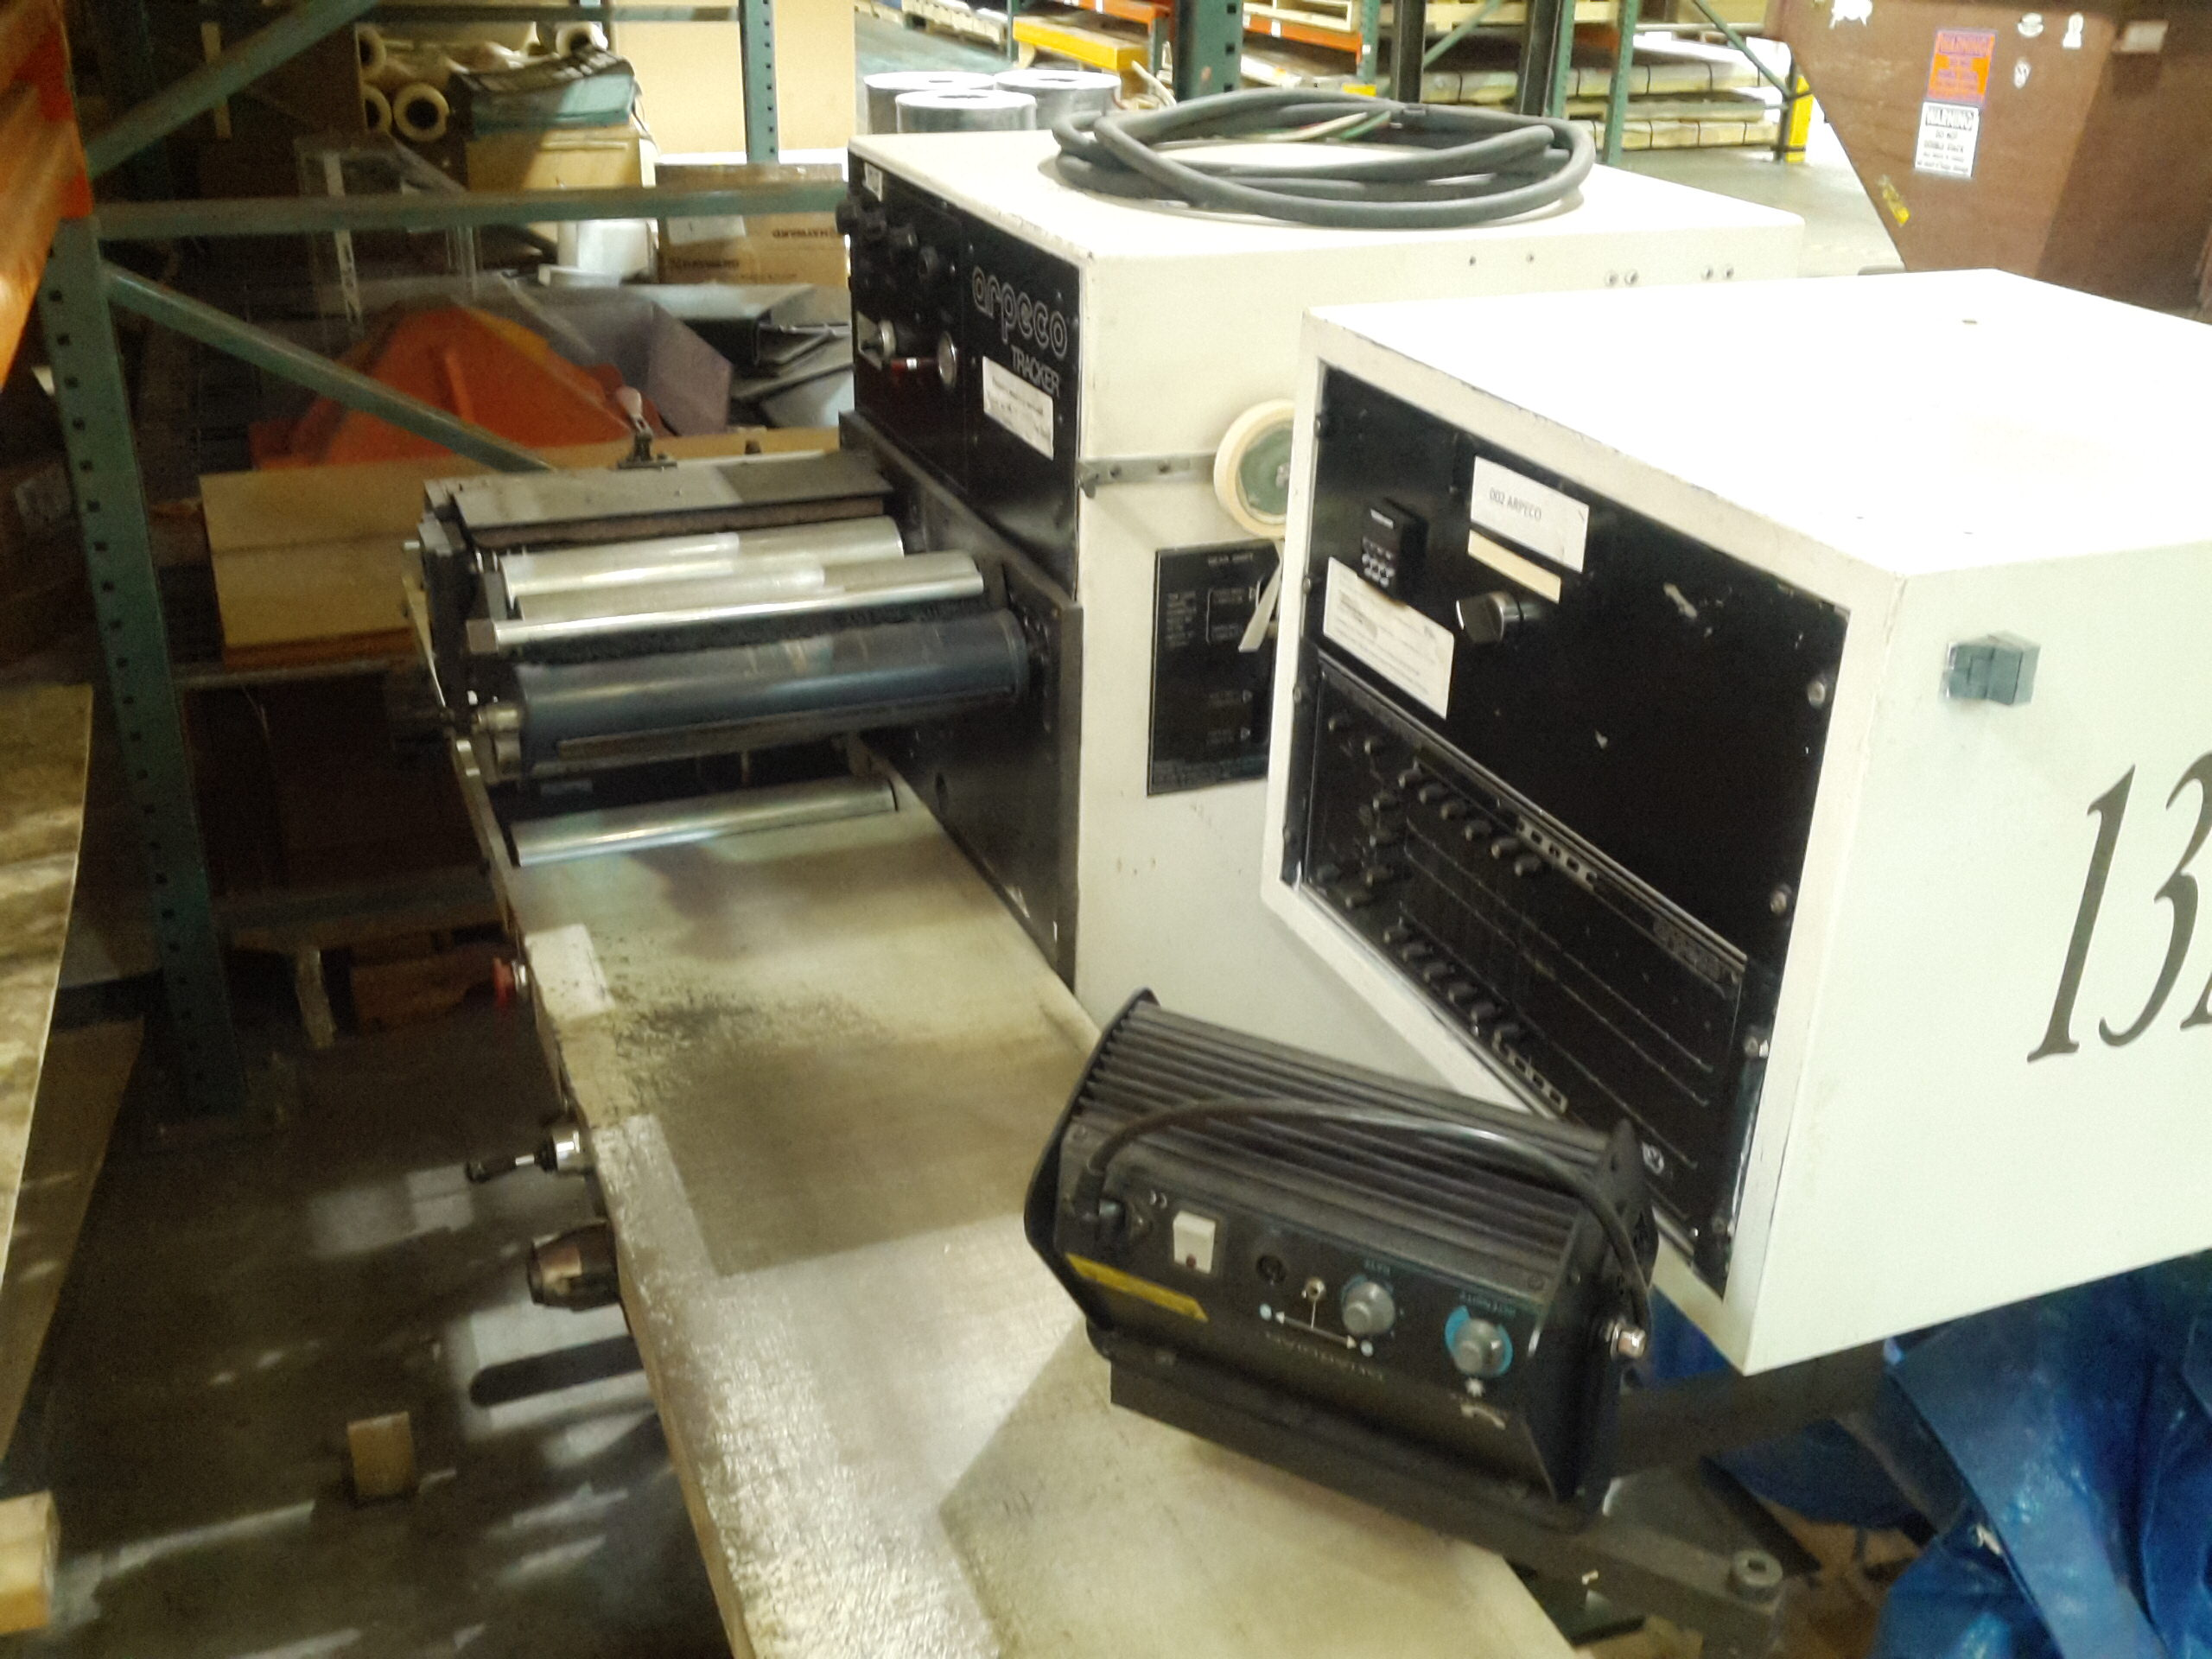 Arpeco Tracker - Used Flexo Printing Presses and Used Flexographic Equipment-0